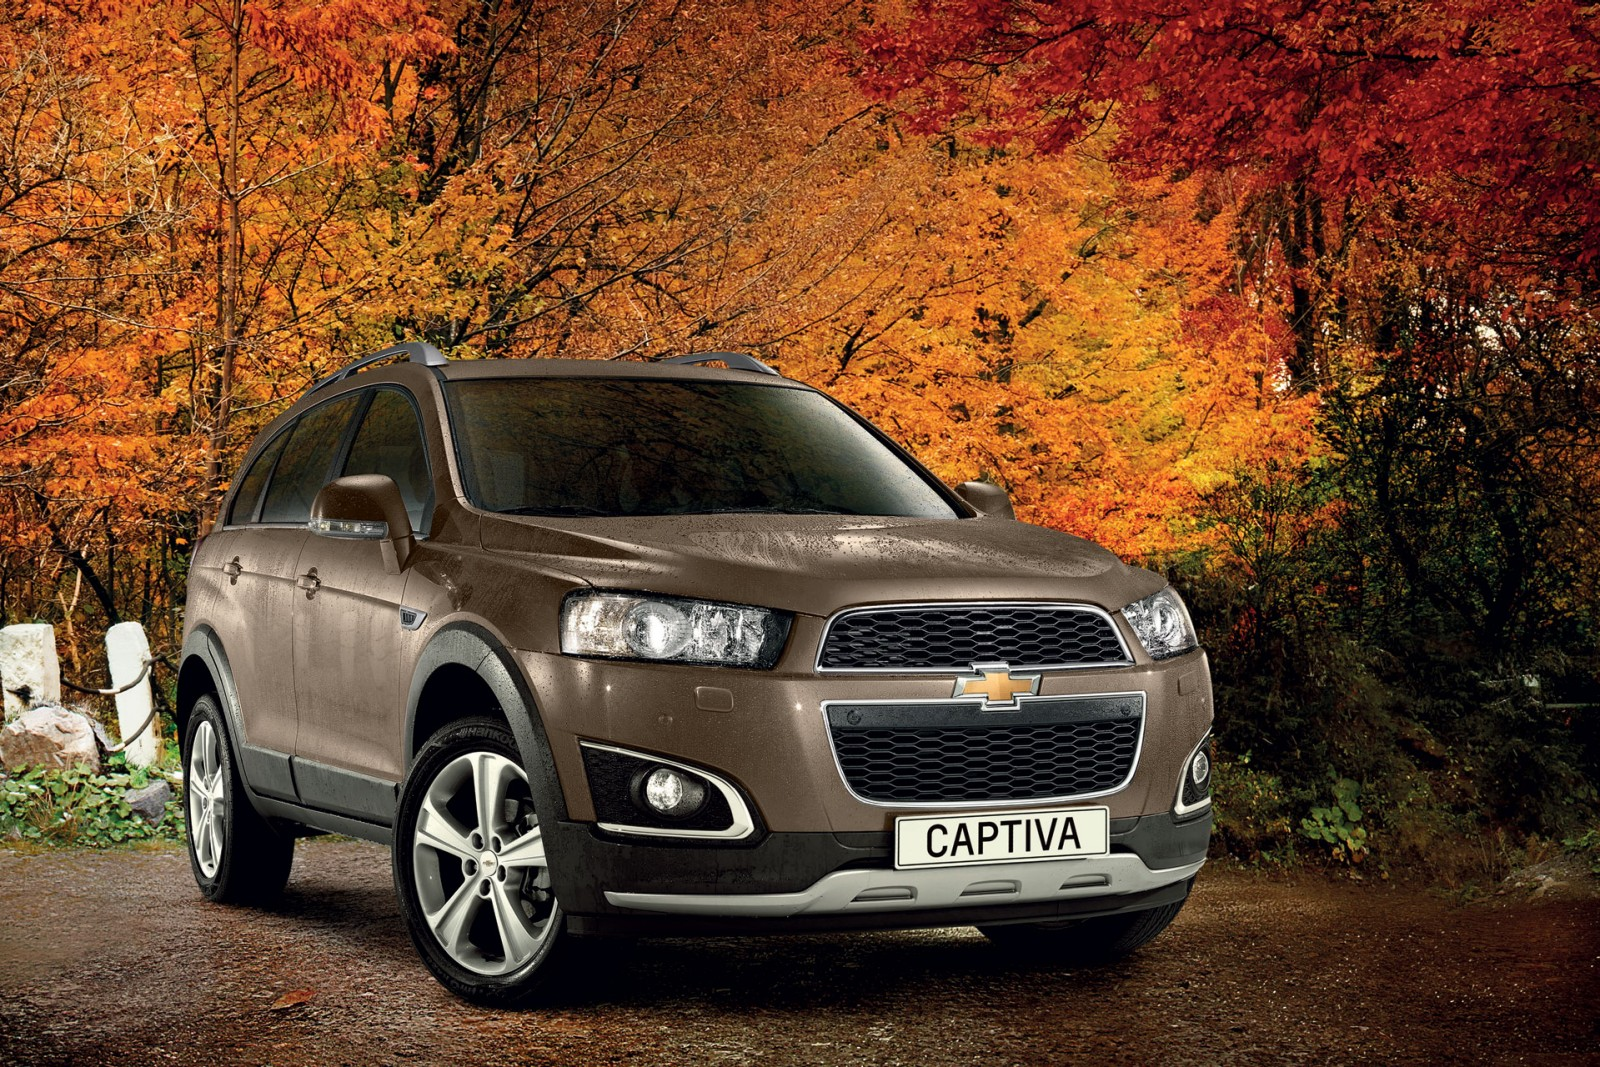 chevrolet wallpaper (Chevrolet Captiva)